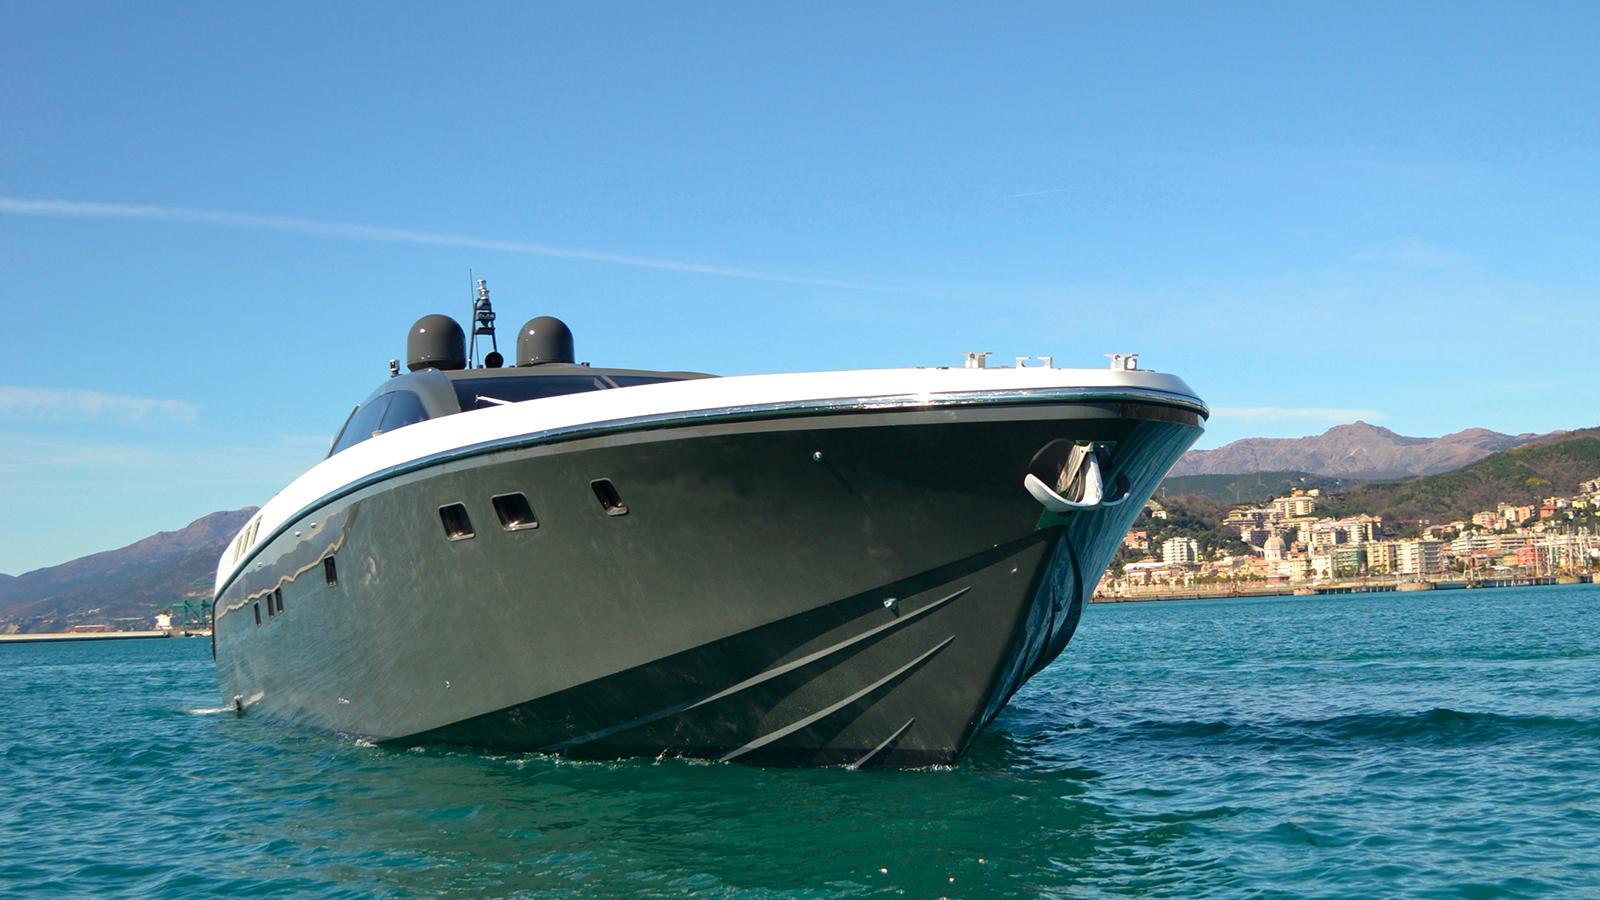 the-bow-of-the-otam-millenium-80ht-yacht-mystere